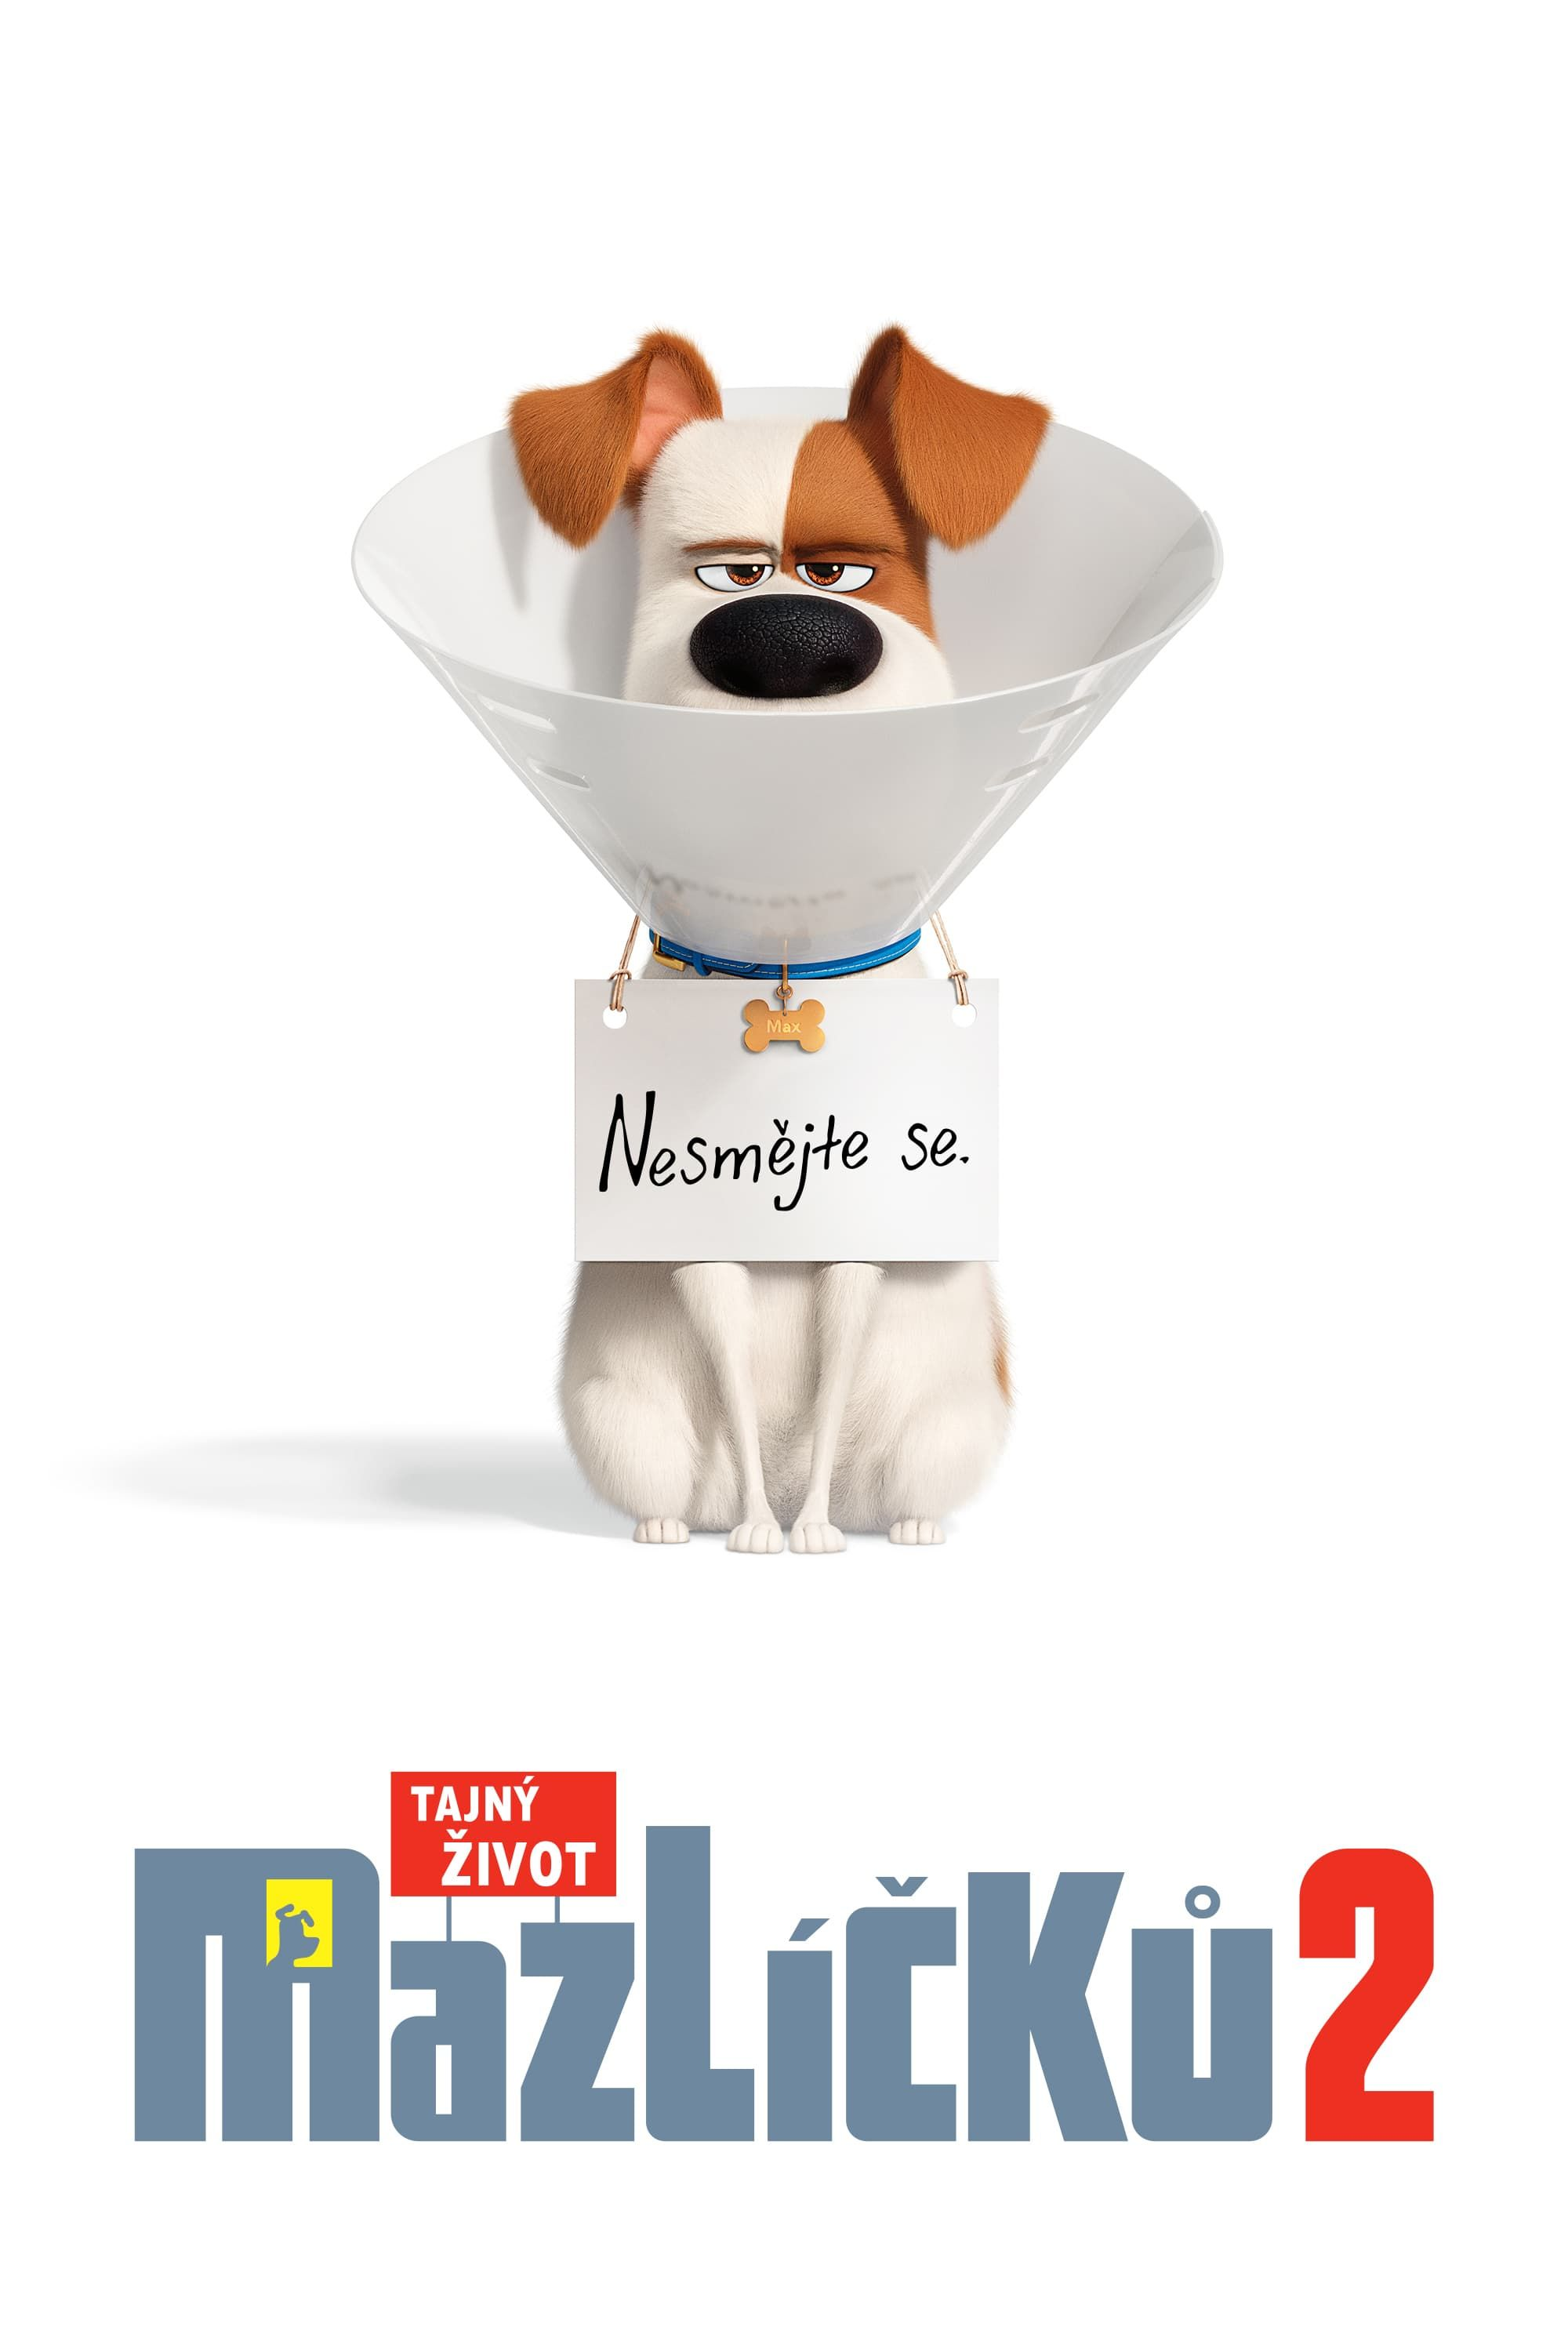 Watch The Secret Life Of Pets 2 full movie Hd1080p Sub English Secret Life Of Pets Secret Life Full Movies Online Free